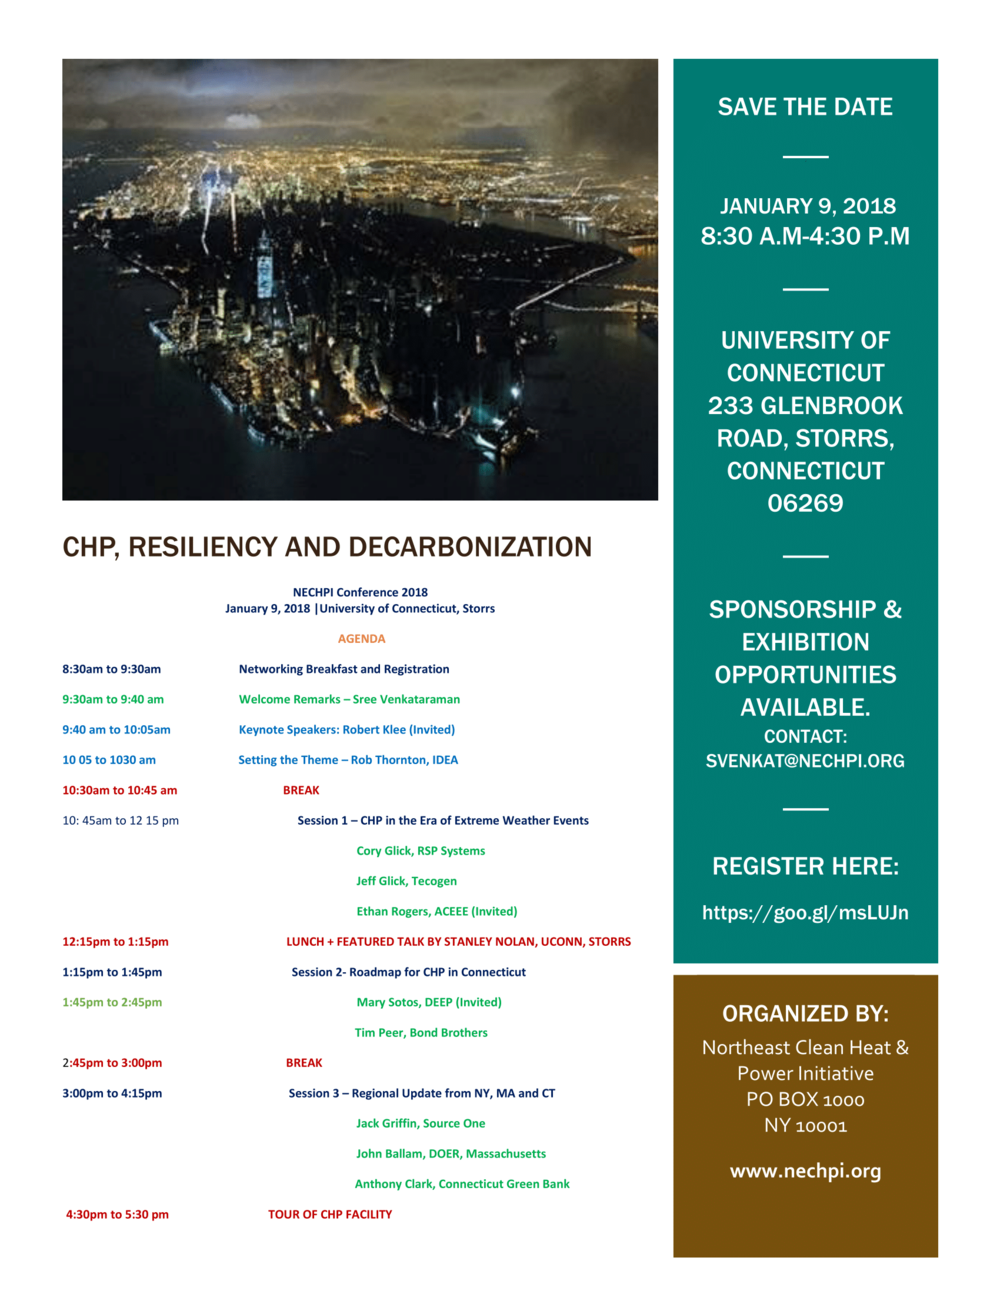 Northeast Clean Heat & Power Initiative is organizing a conference at University of Connecticut, Storrs on January 9, 2018. The theme of the conference is CHP, Resiliency and Decarbonization. The conference includes a discussion on a roadmap for CHP in Connecticut and tour of the UConn Storrs CHP Facility. Speakers for the conference include experts from Connecticut Green Bank, IDEA, Pace Energy and Climate Center, U Conn Storrs, Massachusetts Department of Energy Resources, and others. For sponsorship and exhibition opportunities, please email svenkat@nechpi.org Please register here: https://goo.gl/msLUJn